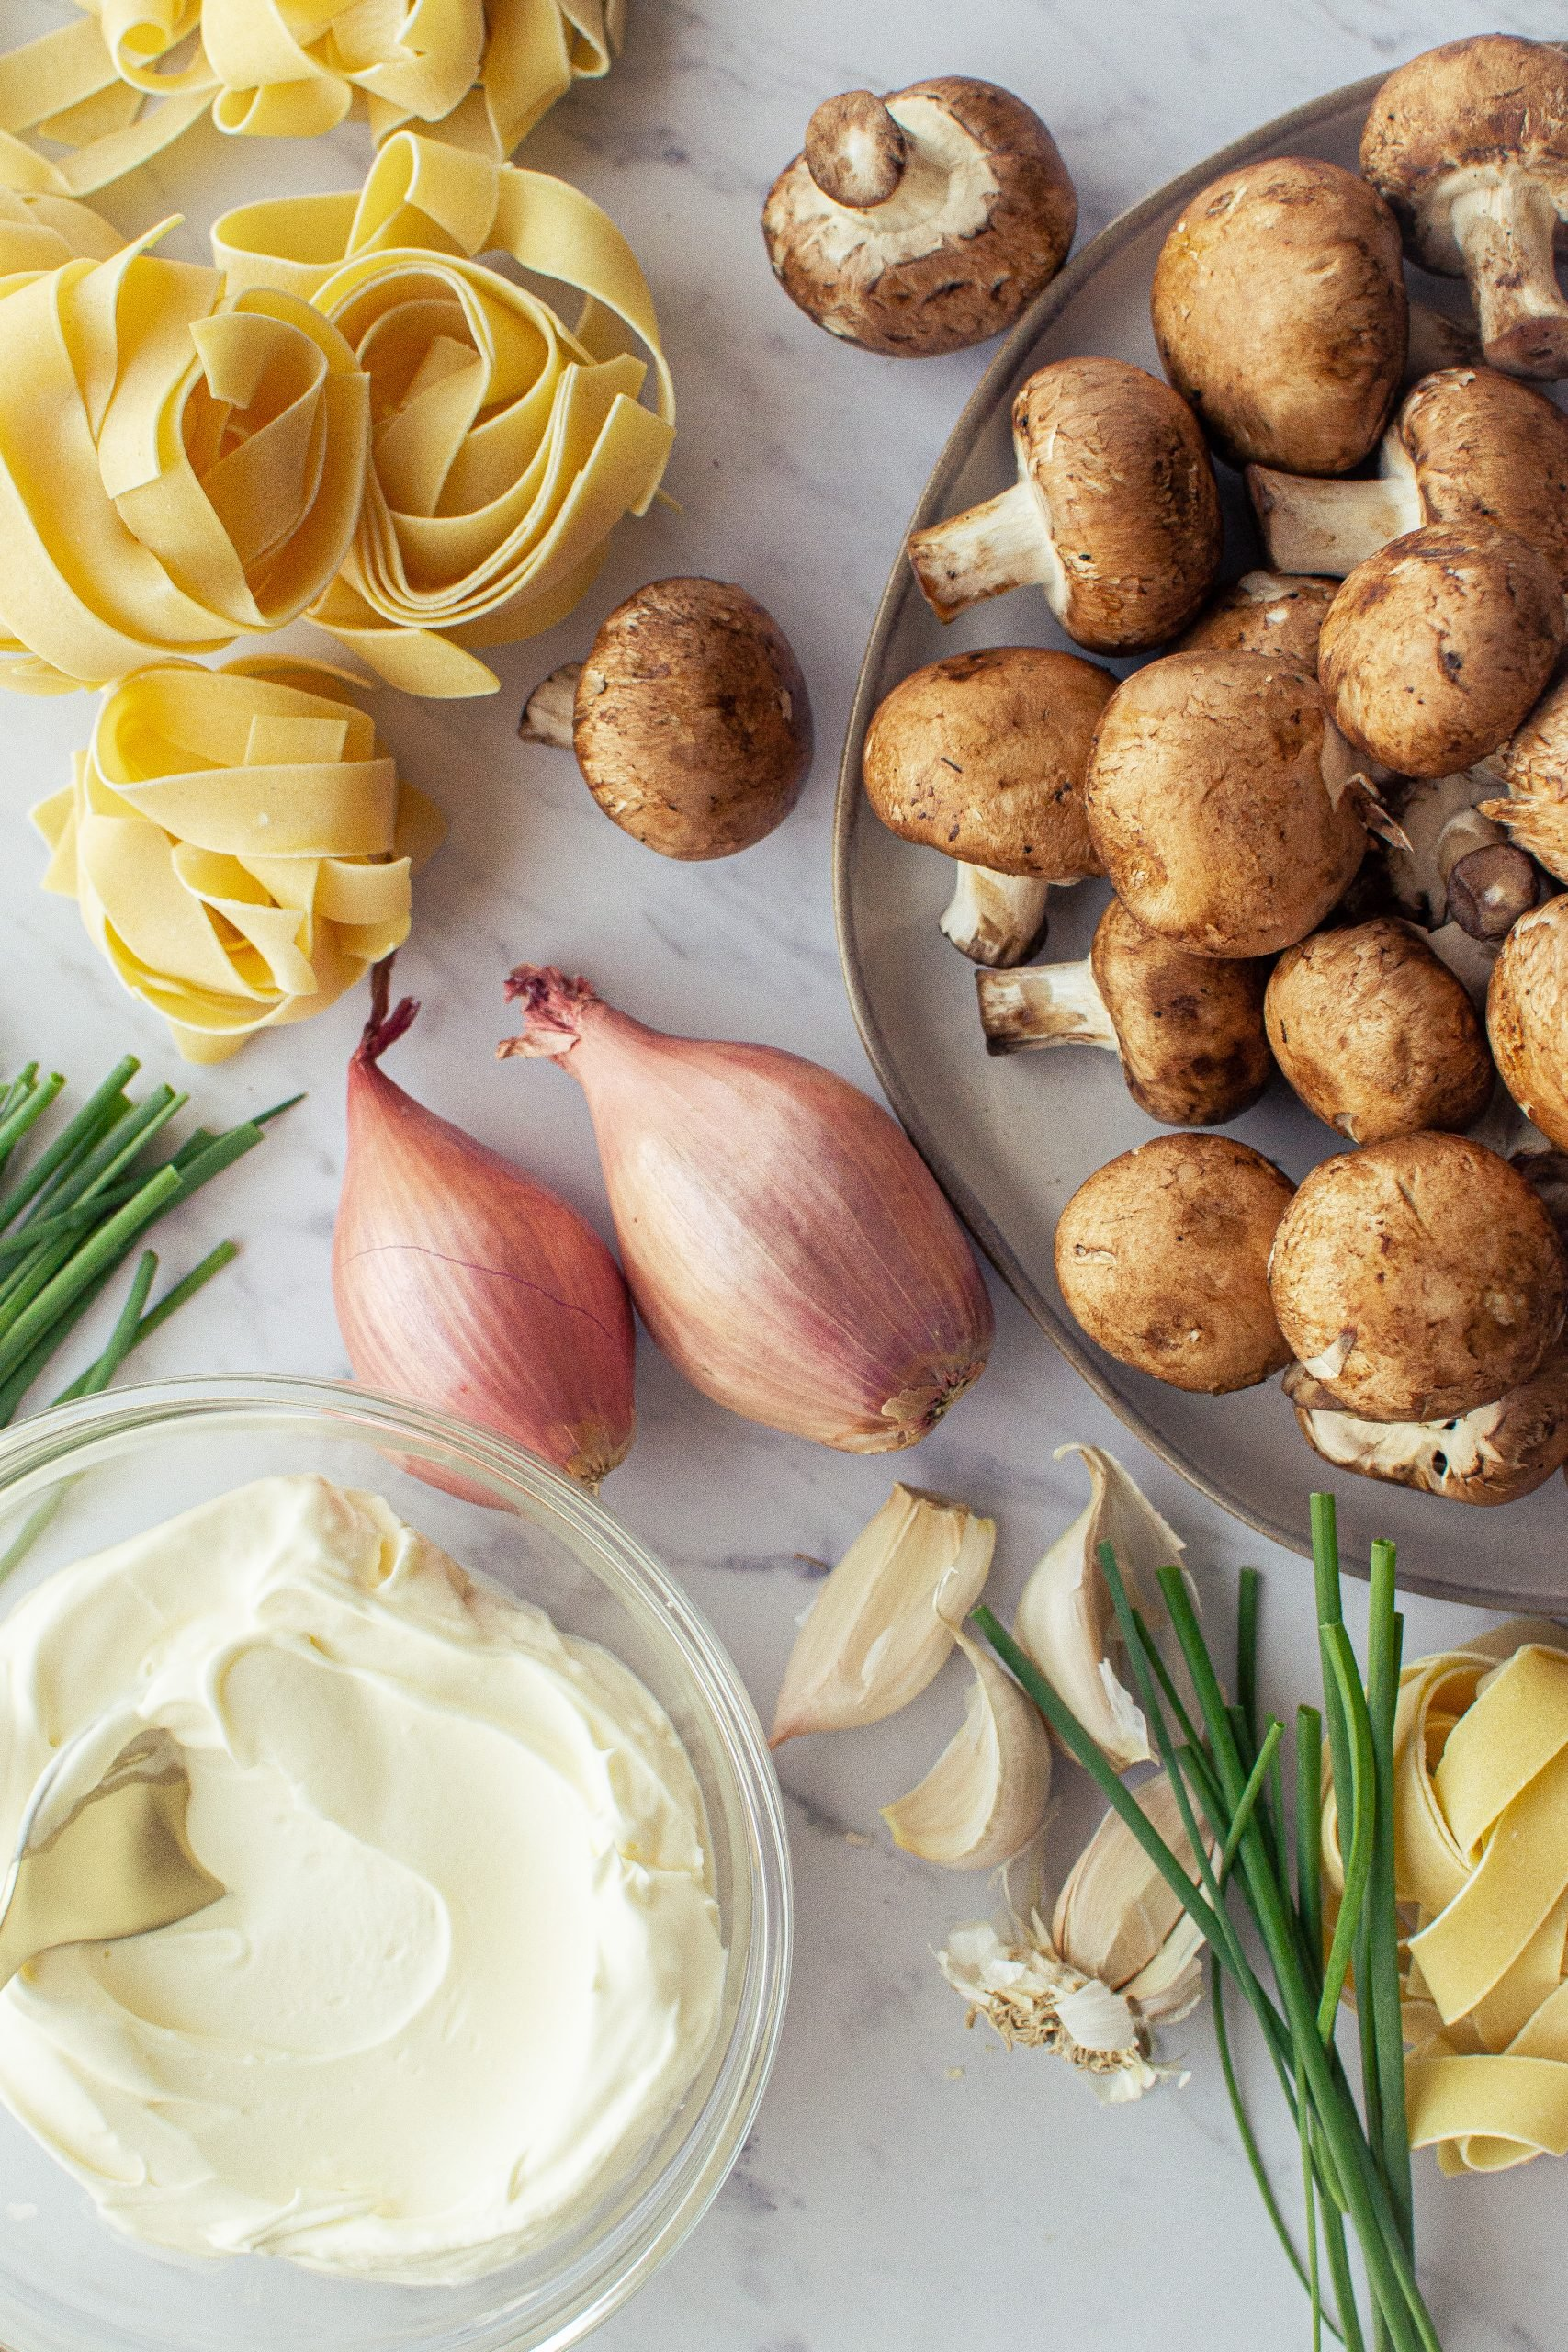 ingredients for creamy braised beef stroganoff, shallots, mushrooms, creme fraiche, garlic, chives, pappardelle noodles